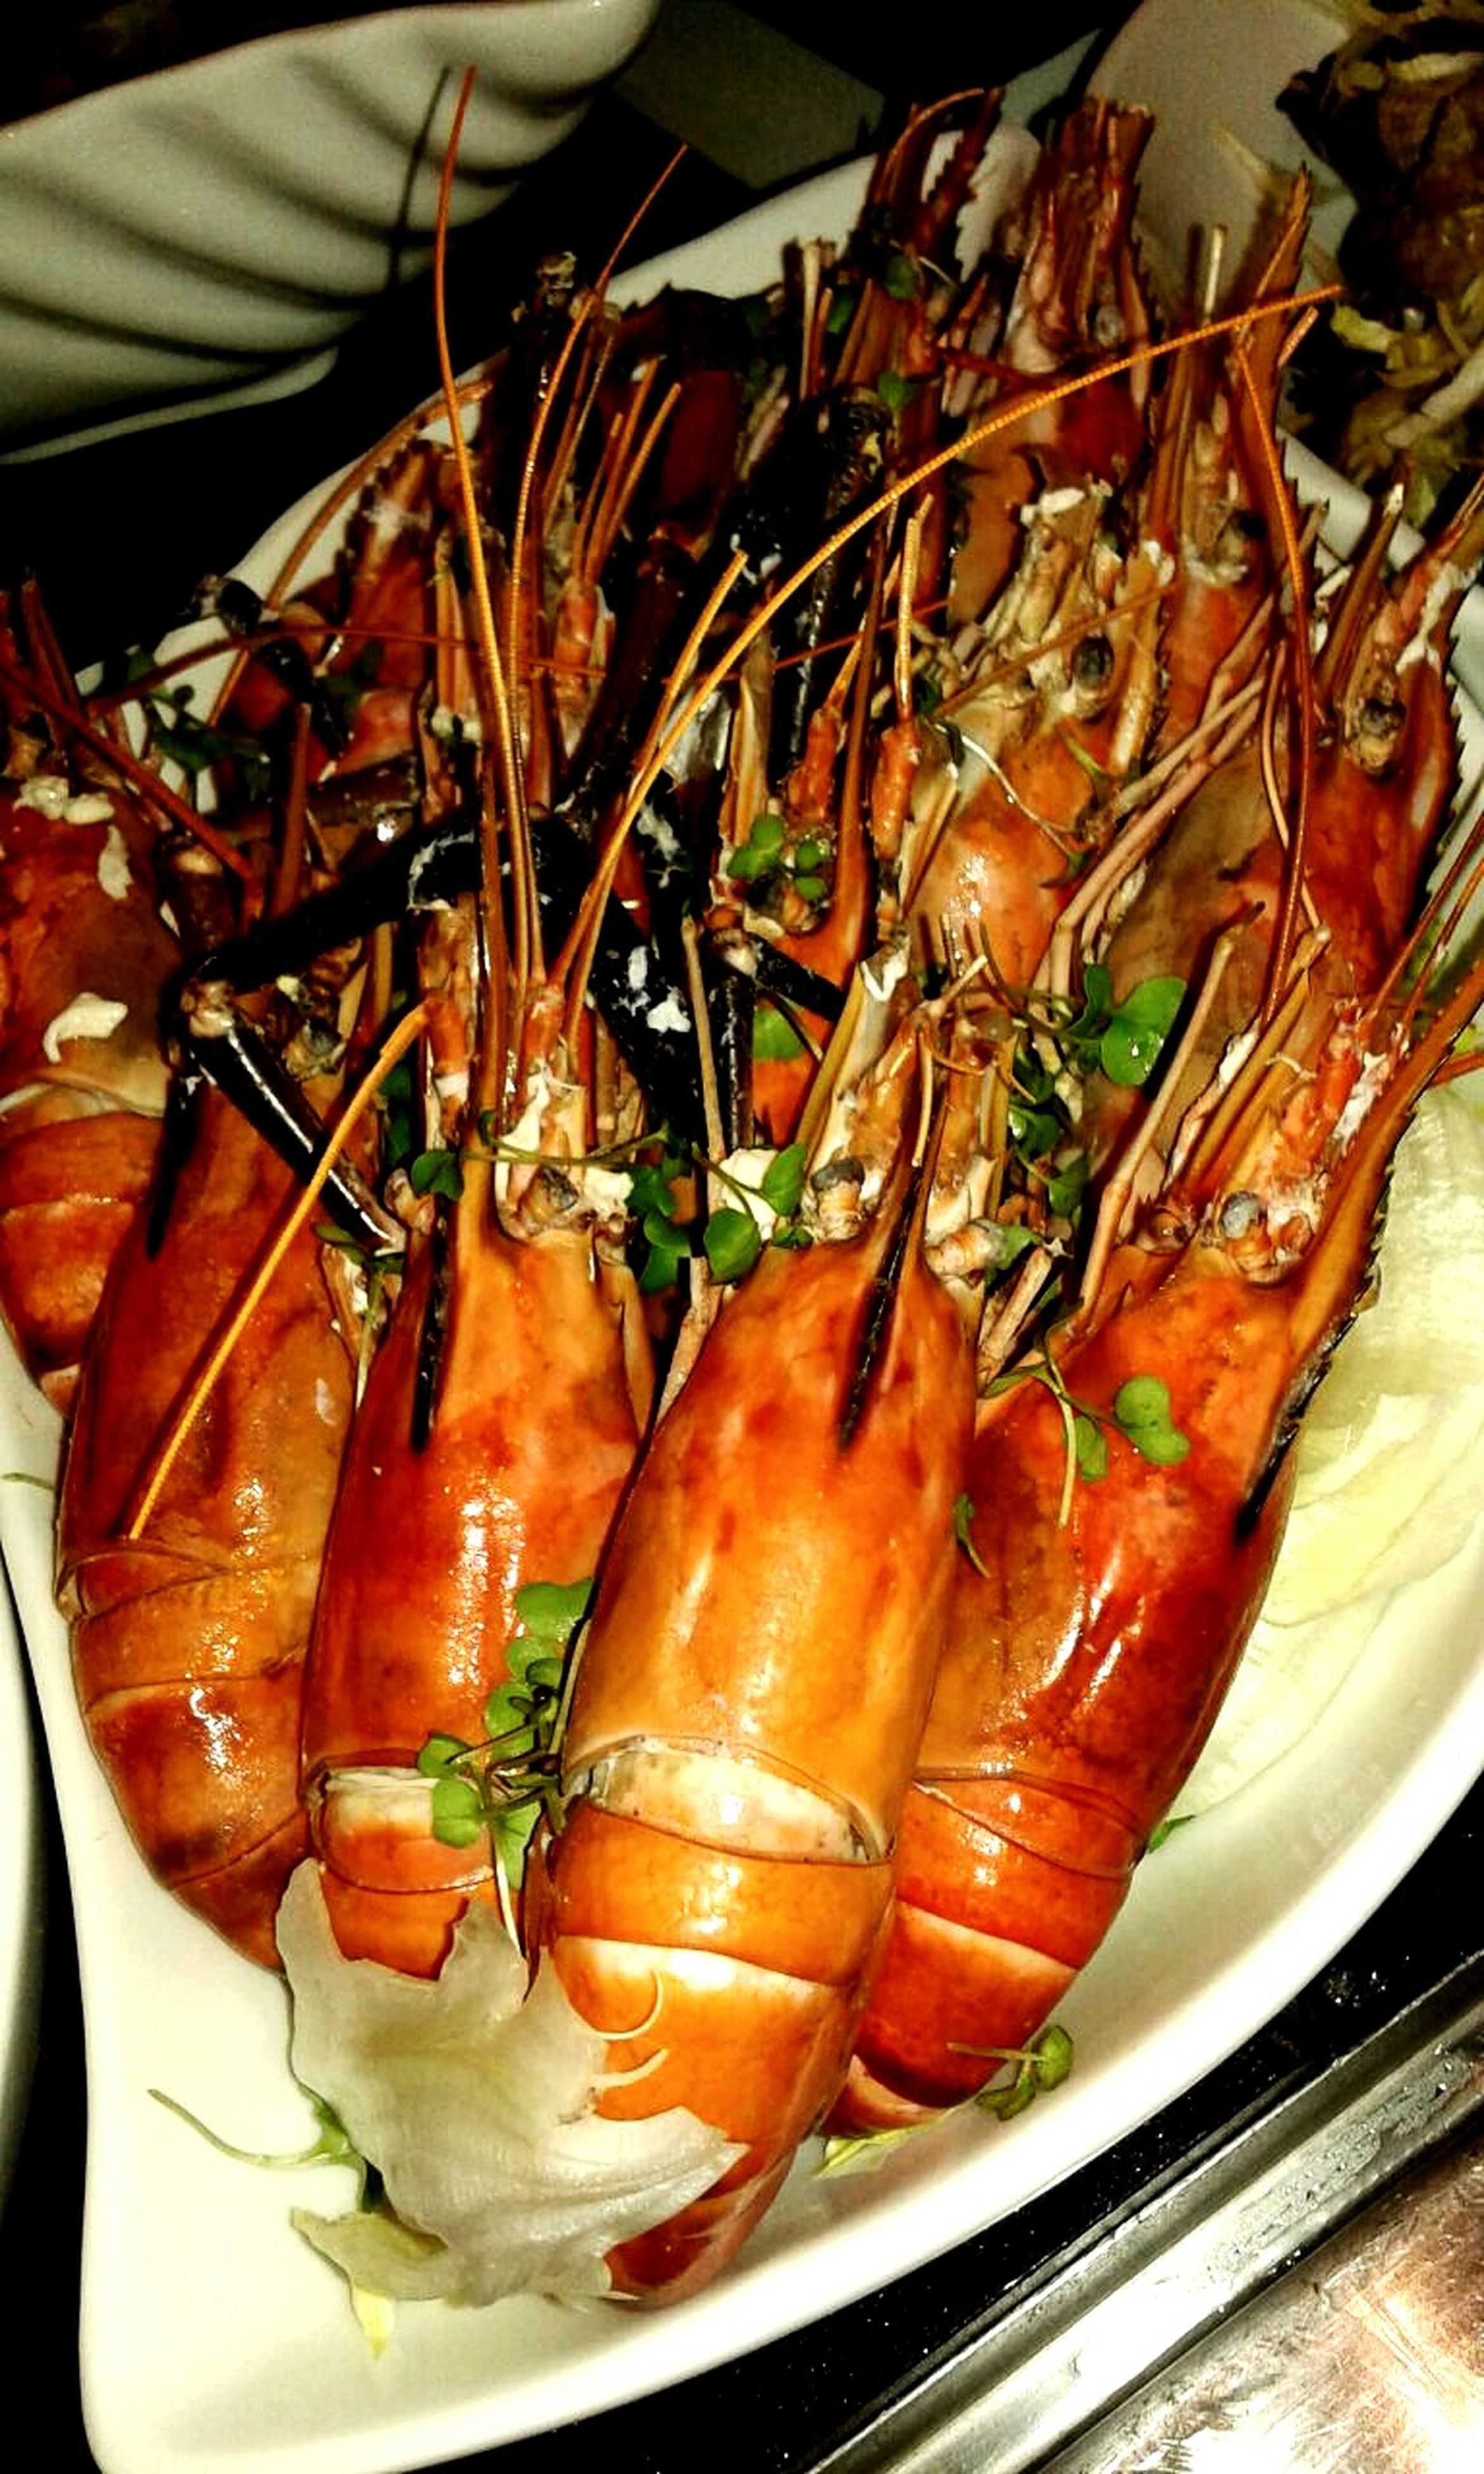 food and drink, food, freshness, indoors, healthy eating, seafood, still life, vegetable, high angle view, plate, ready-to-eat, close-up, meat, meal, table, prawn, fish, shrimp, serving size, indulgence